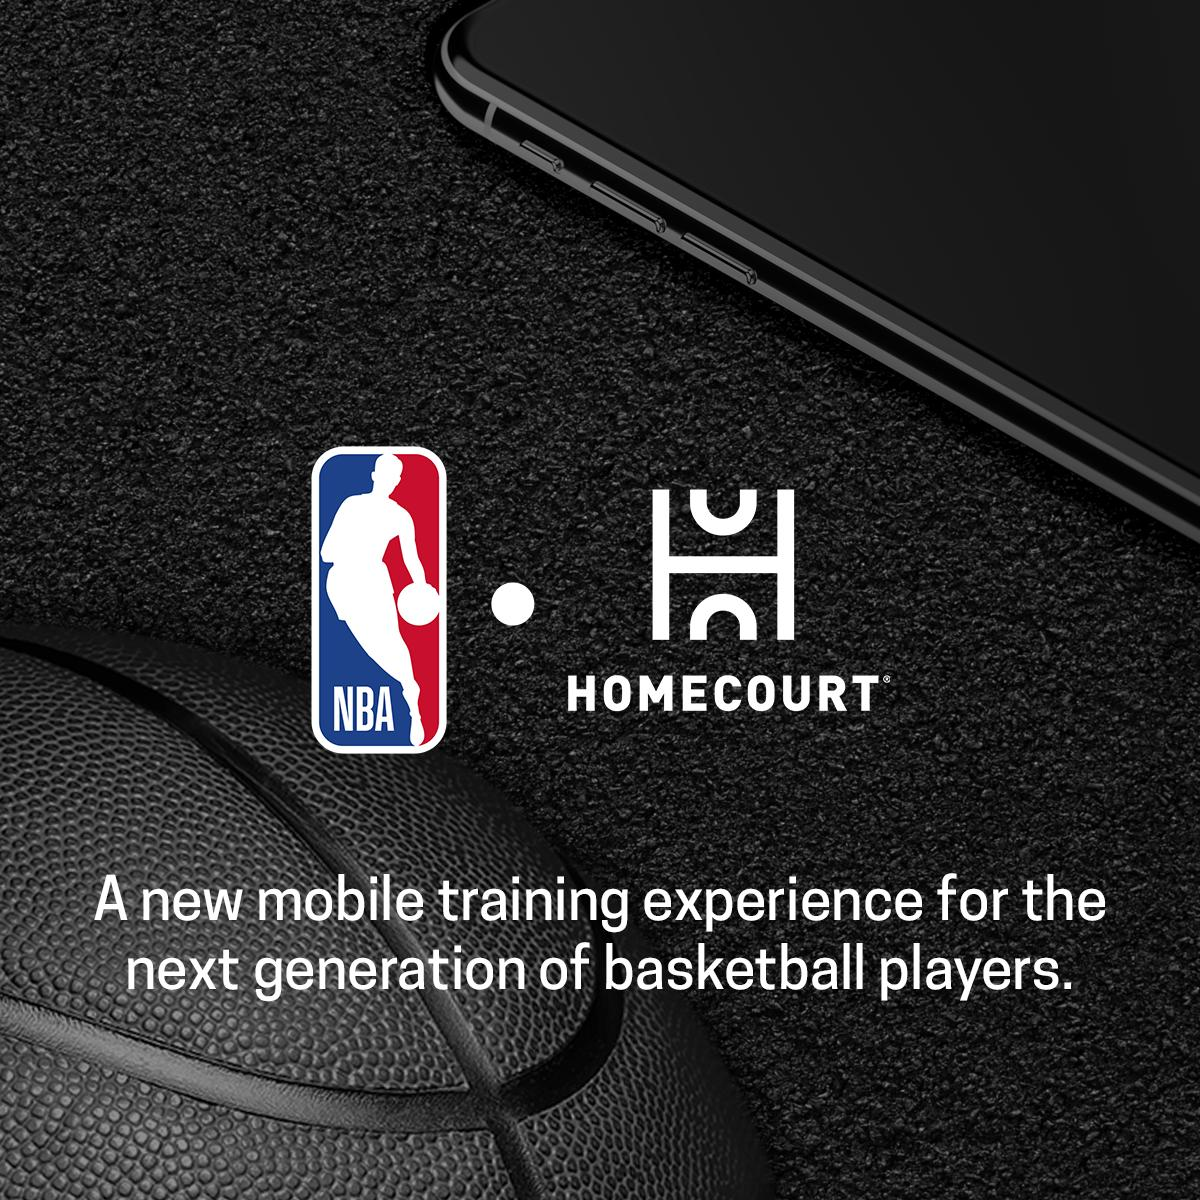 The NBA is excited to announce its partnership with @HomeCourtai to develop a new mobile training experience for the next generation of basketball players. Check out the NBA Summer contests and start honing your basketball skills. #HomeCourtNBA   📱: https://pr.nba.com/nba-partnership-nex-team-homecourt-app/ …